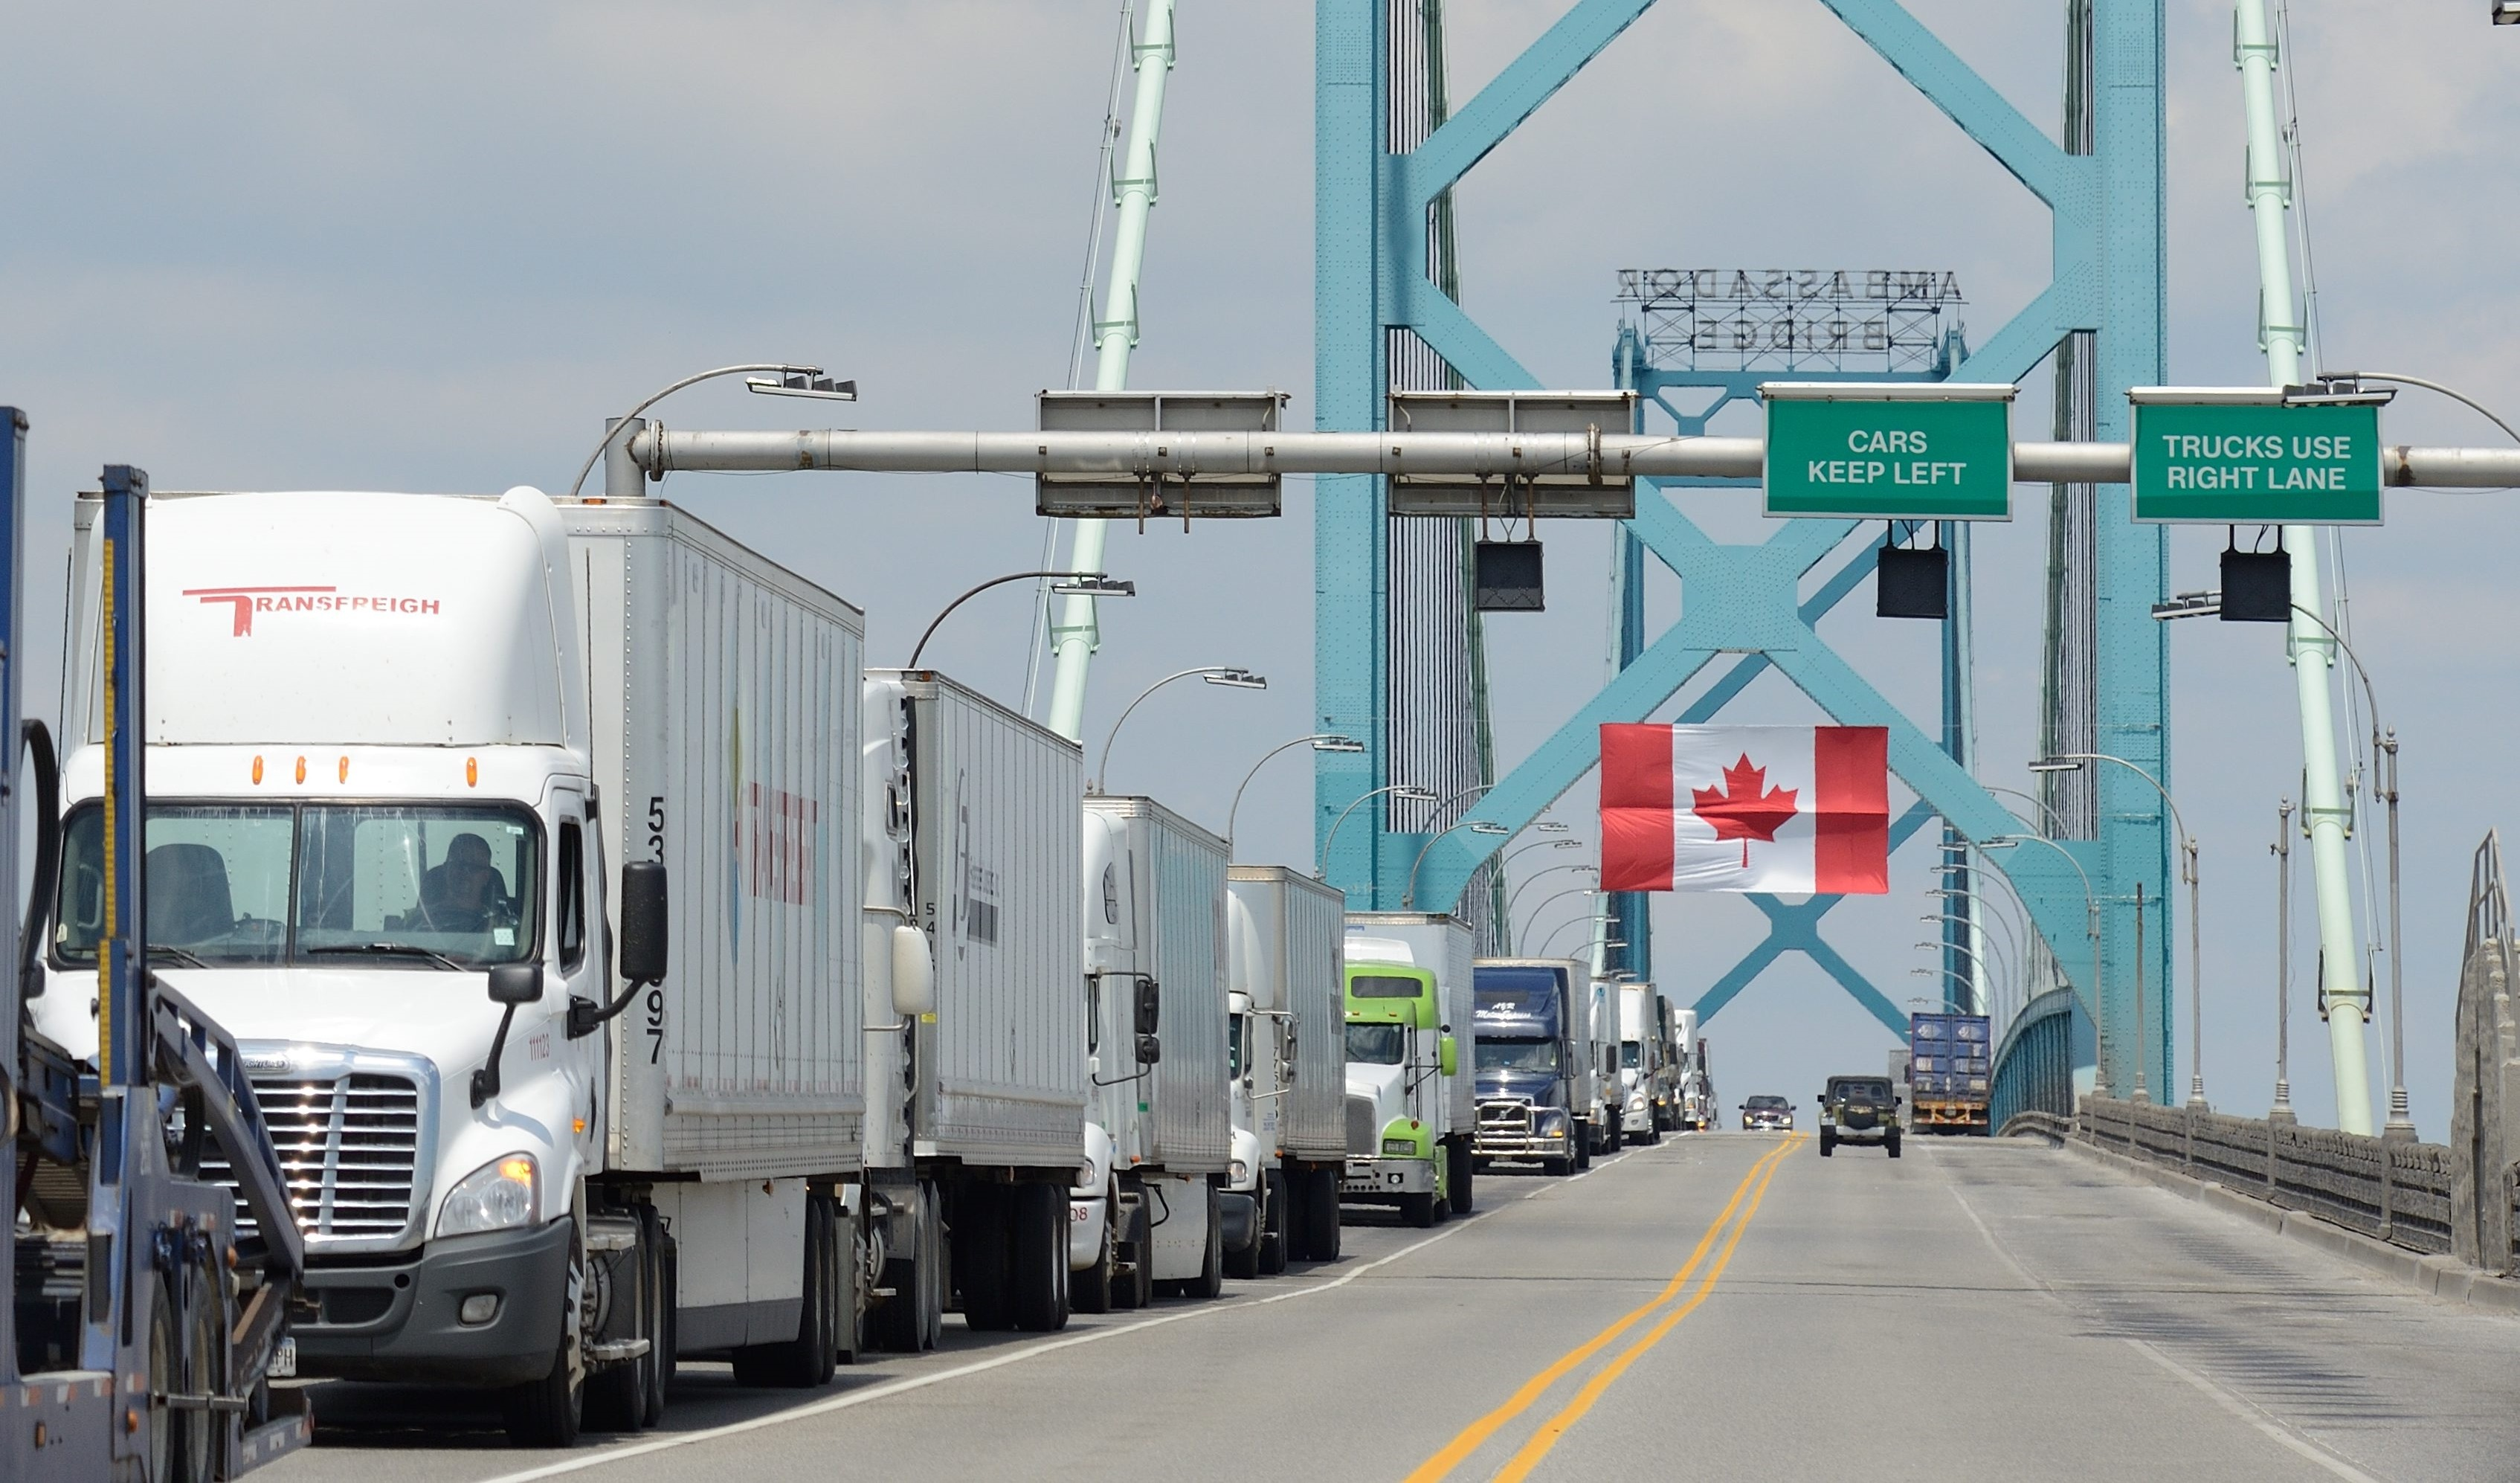 canada trade trucks ambassador bridge